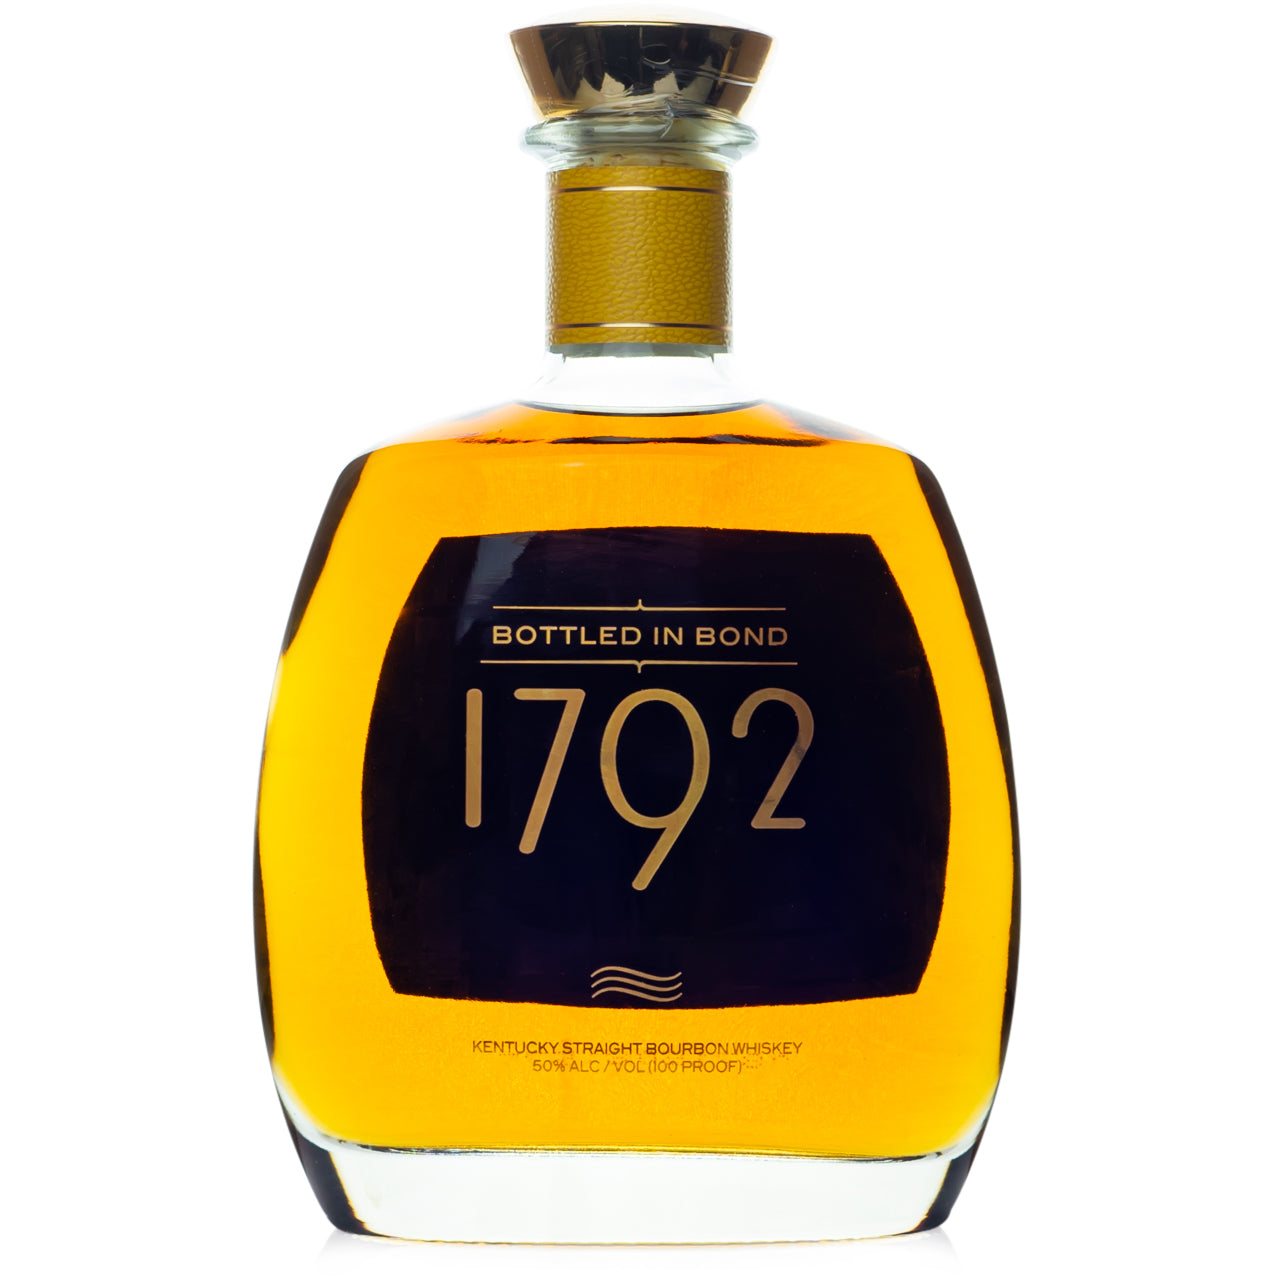 1792 Bottled in Bond Bourbon